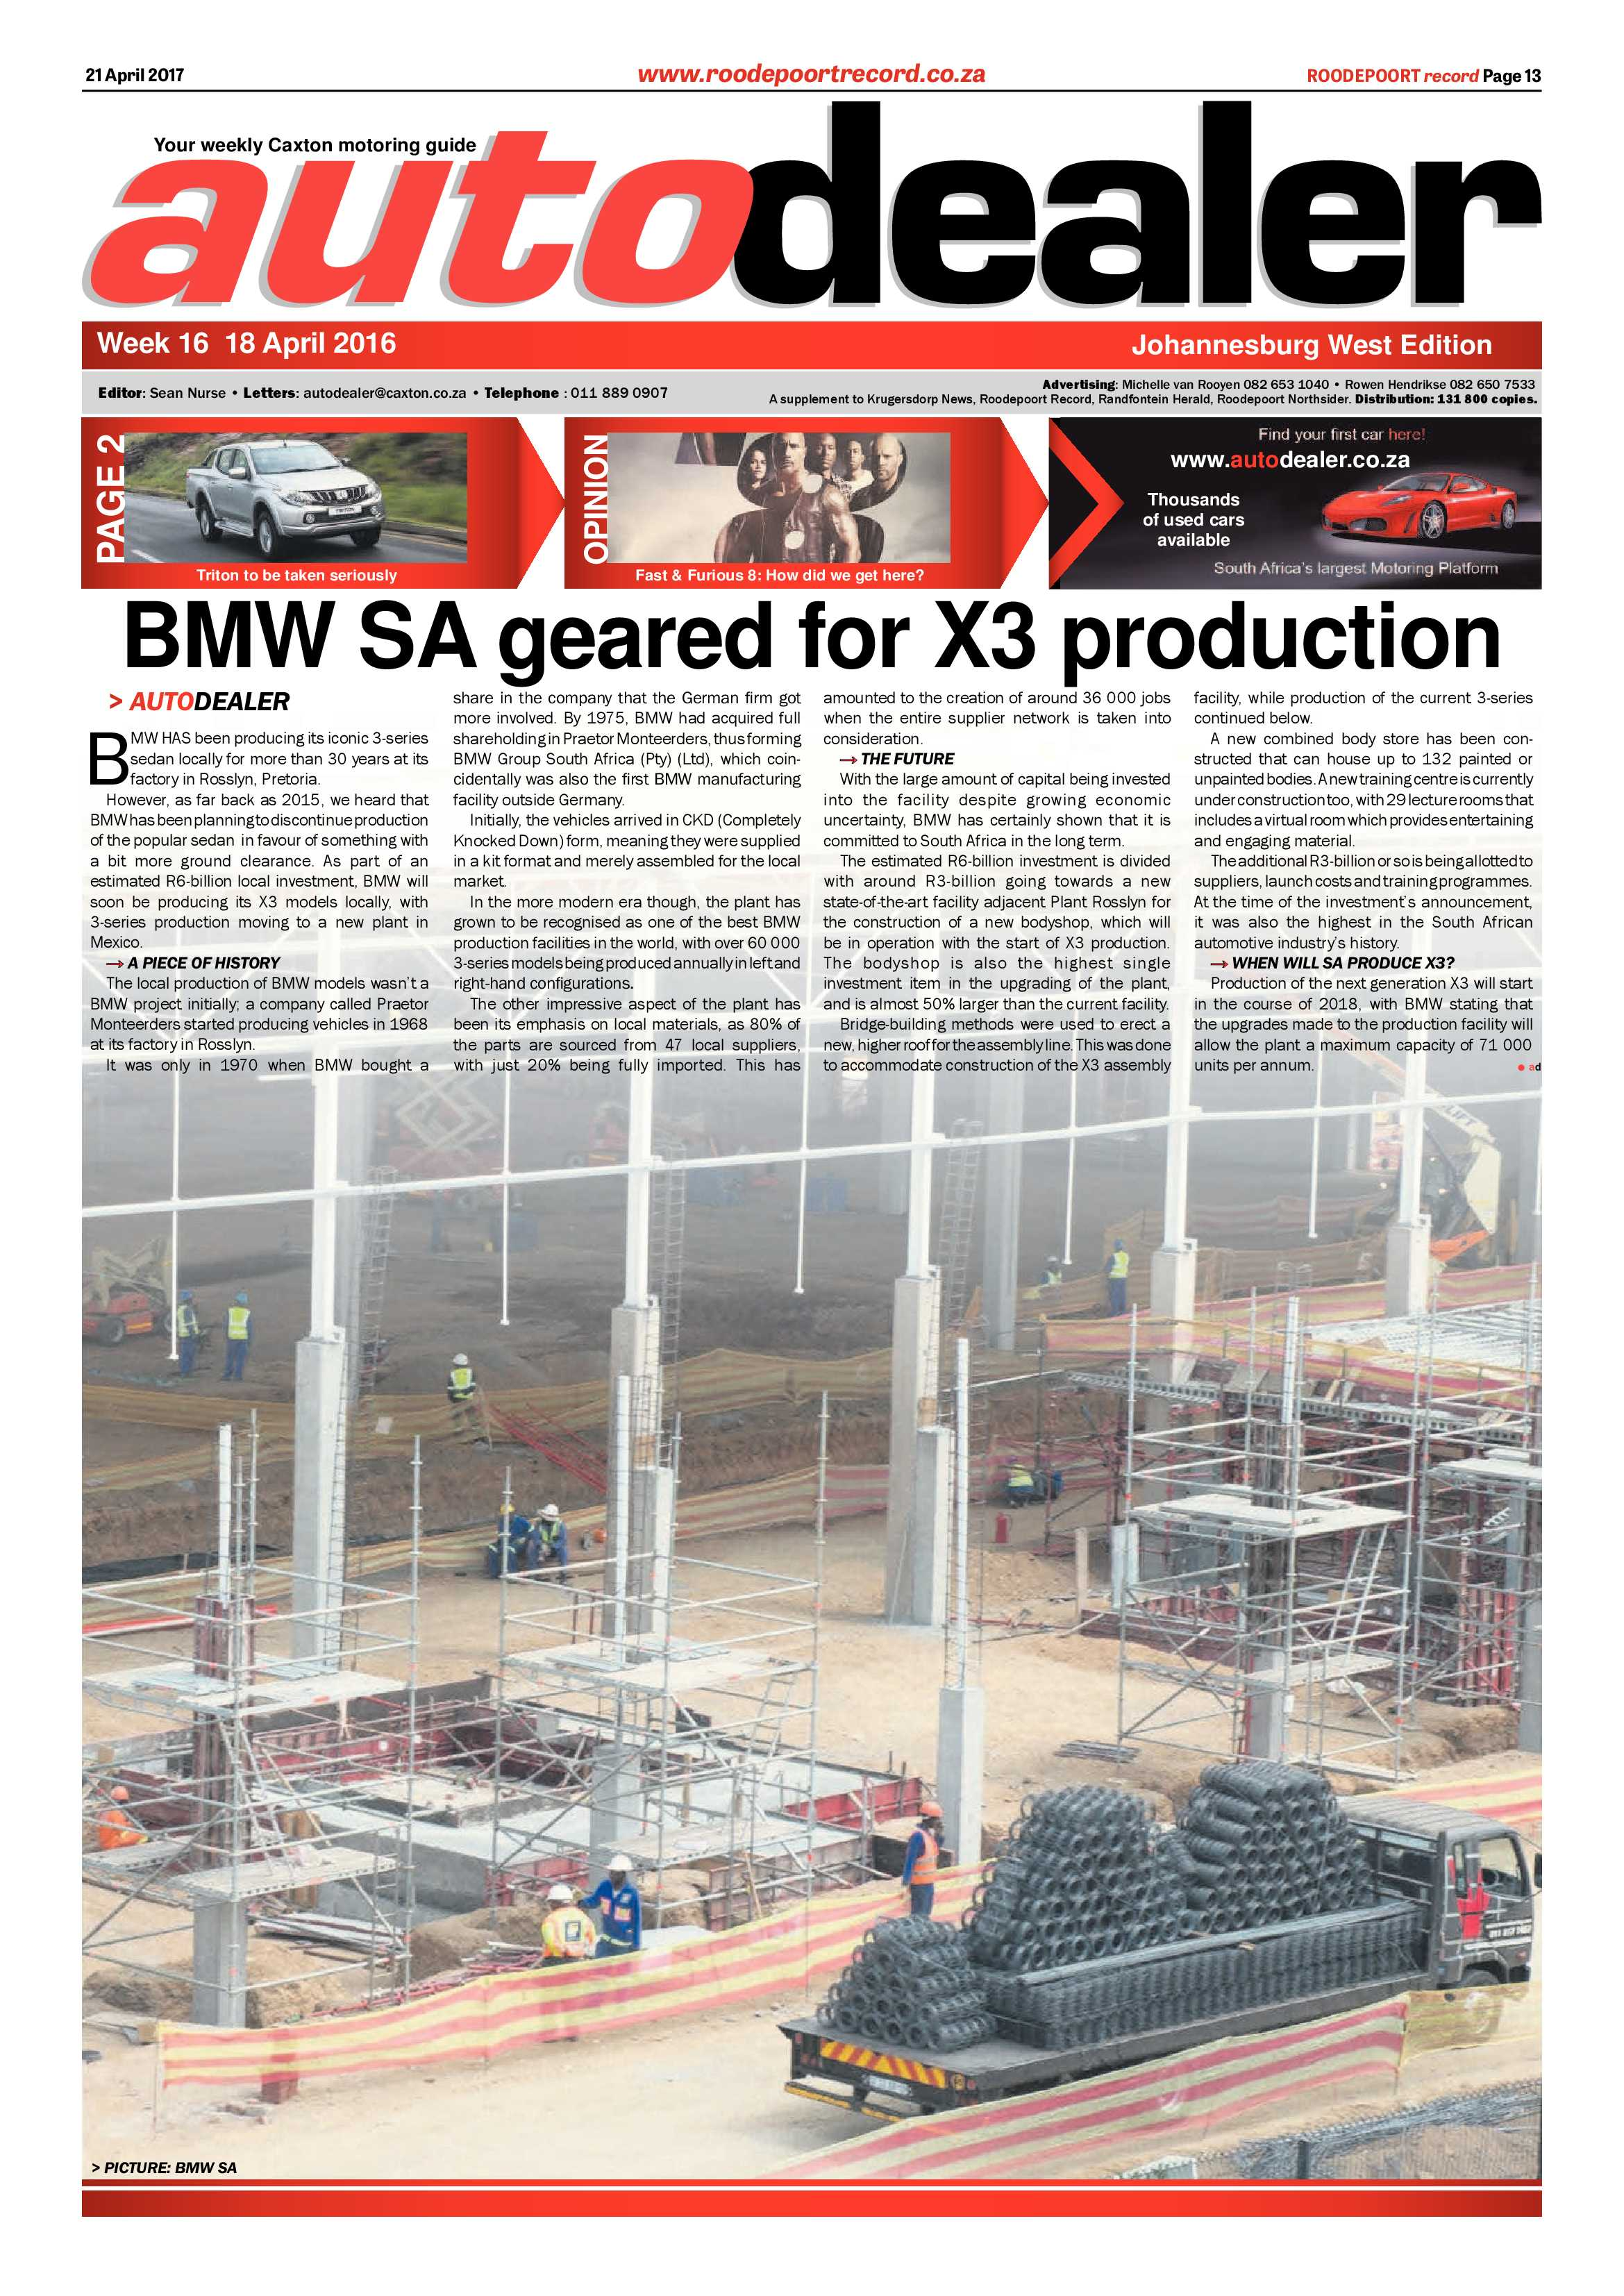 roodepoort-record-21-april-2017-epapers-page-13